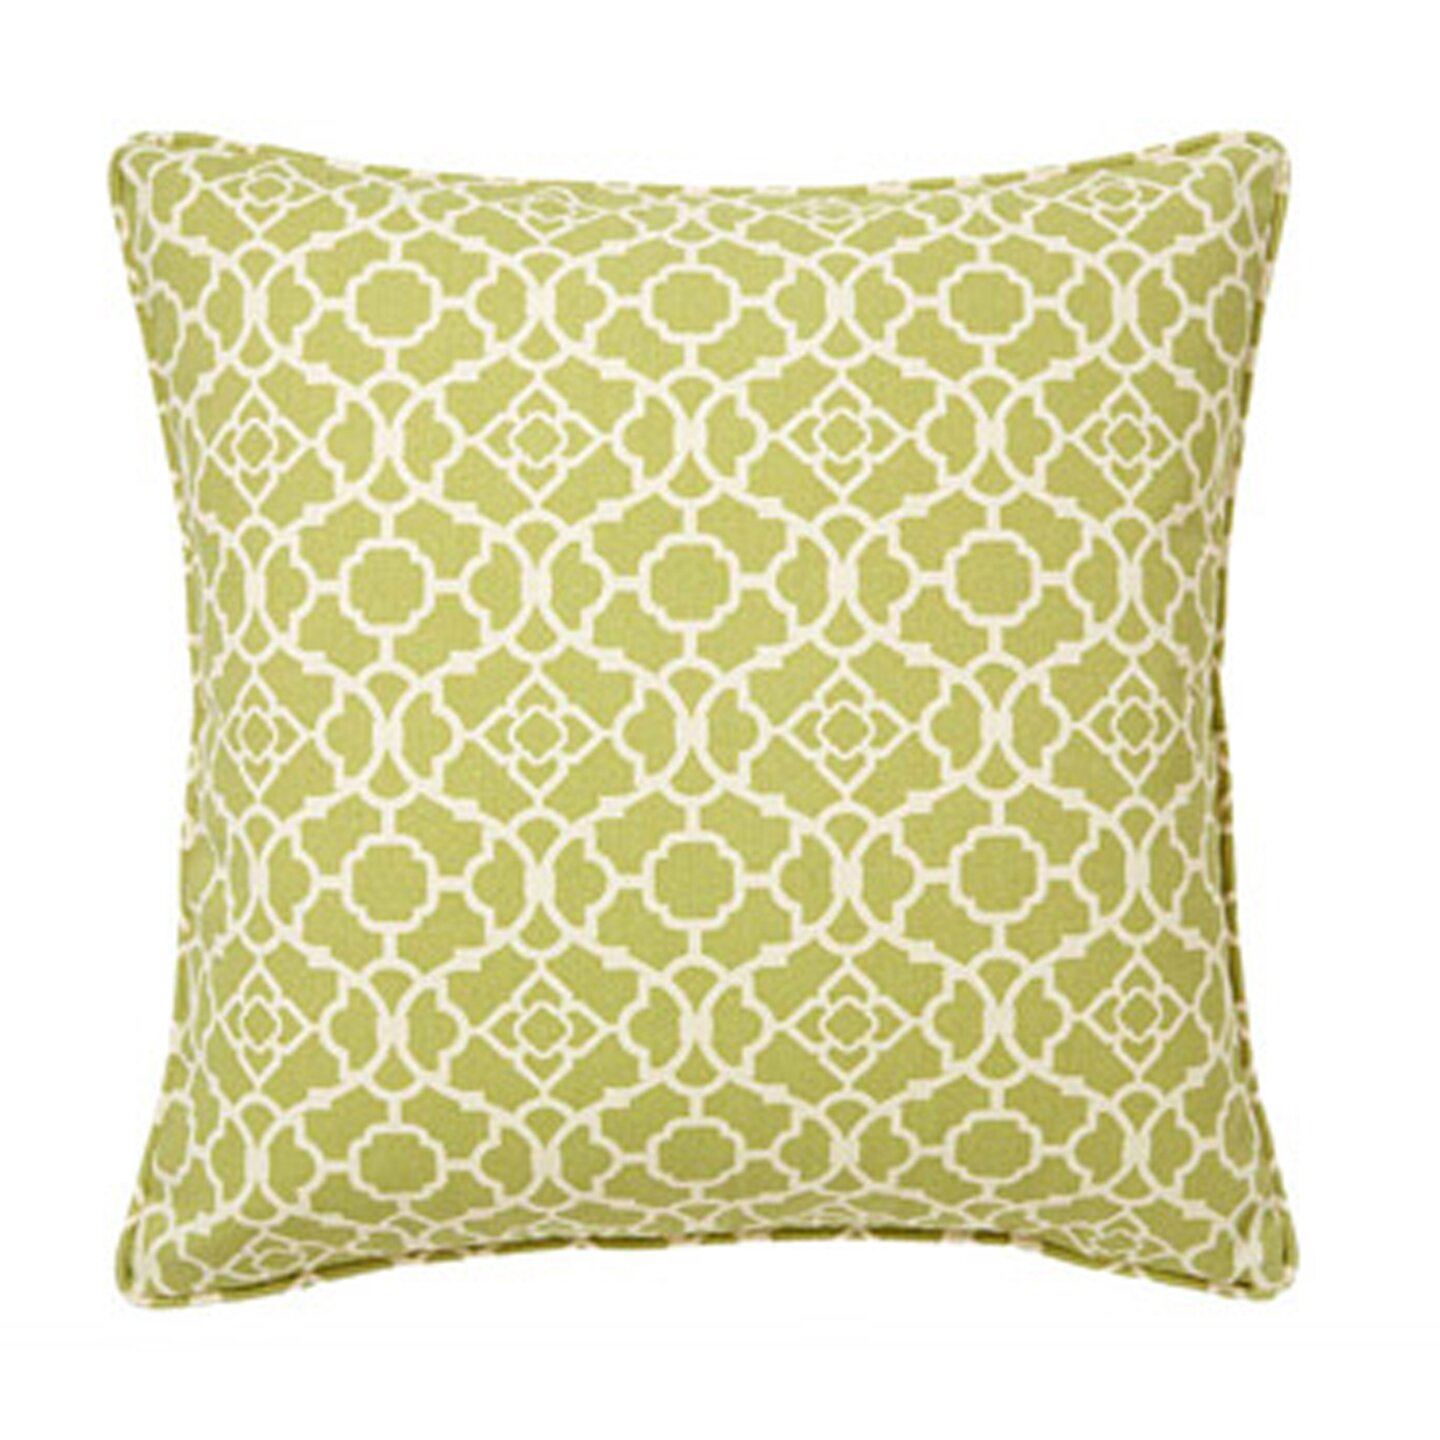 Throw Pillows Malum : Jiti Moroccan Indoor/Outdoor Throw Pillow & Reviews Wayfair